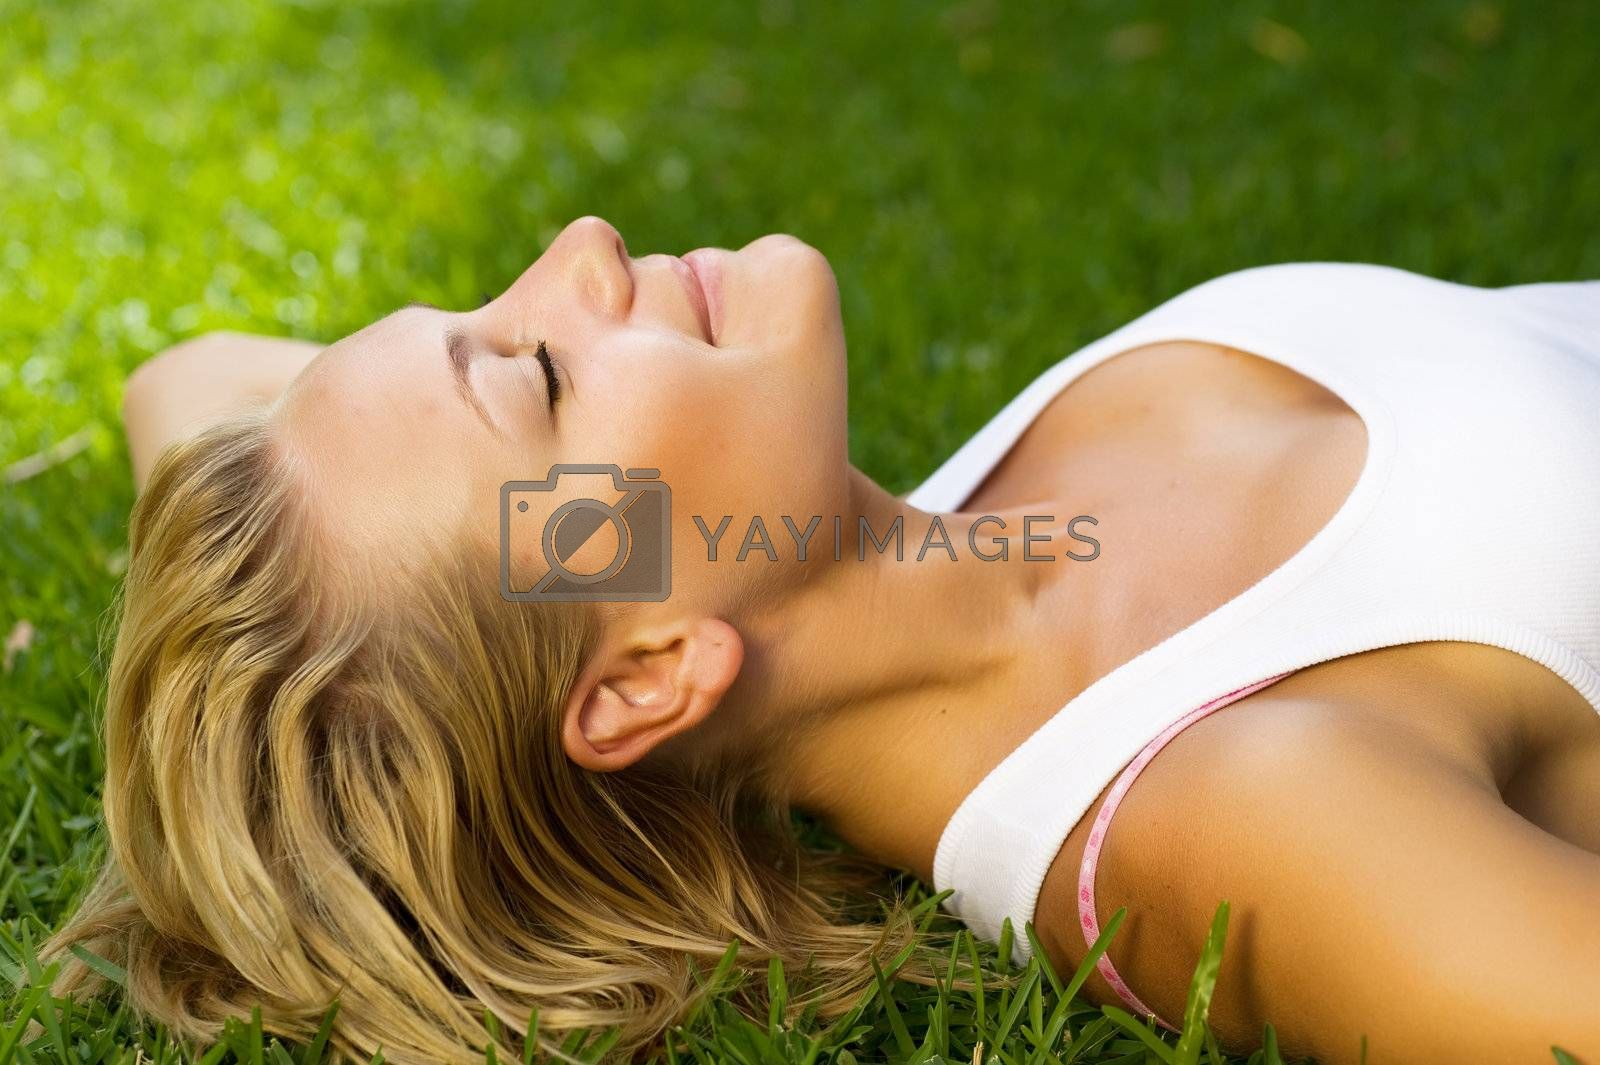 Beautiful Healthy Young Woman Lying On The Green Grass by SubbotinaA